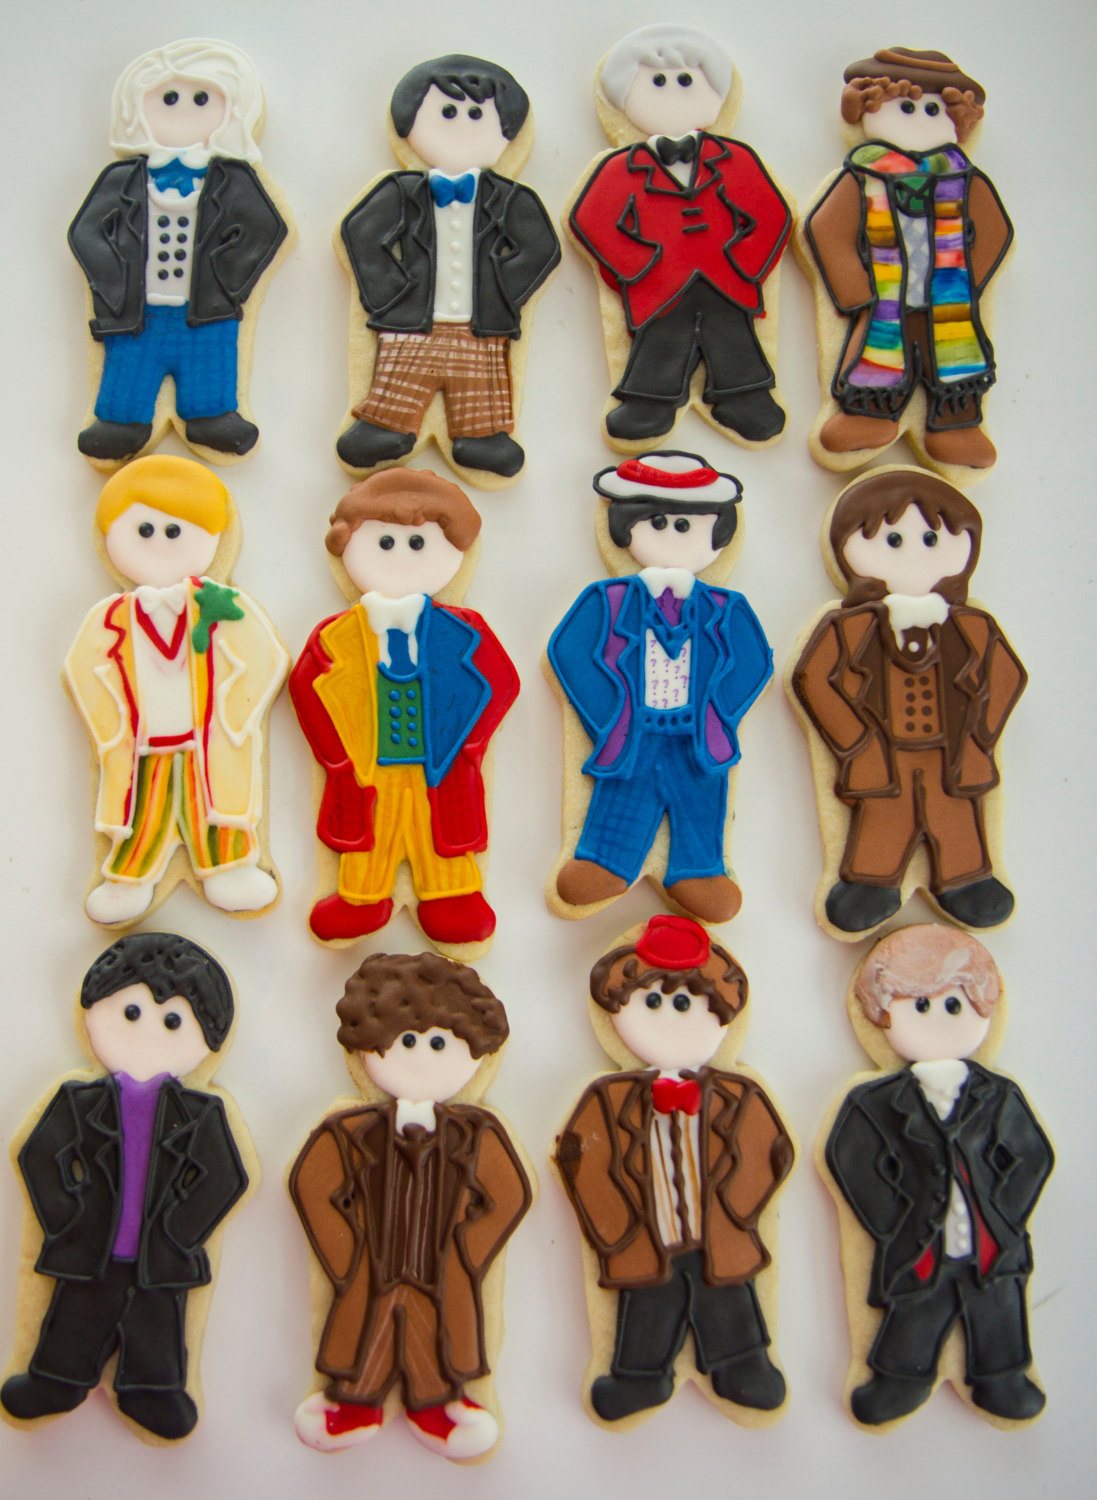 Pop-culture gingerbread cookies: The doctors of Doctor Who at Charlie's Cookies